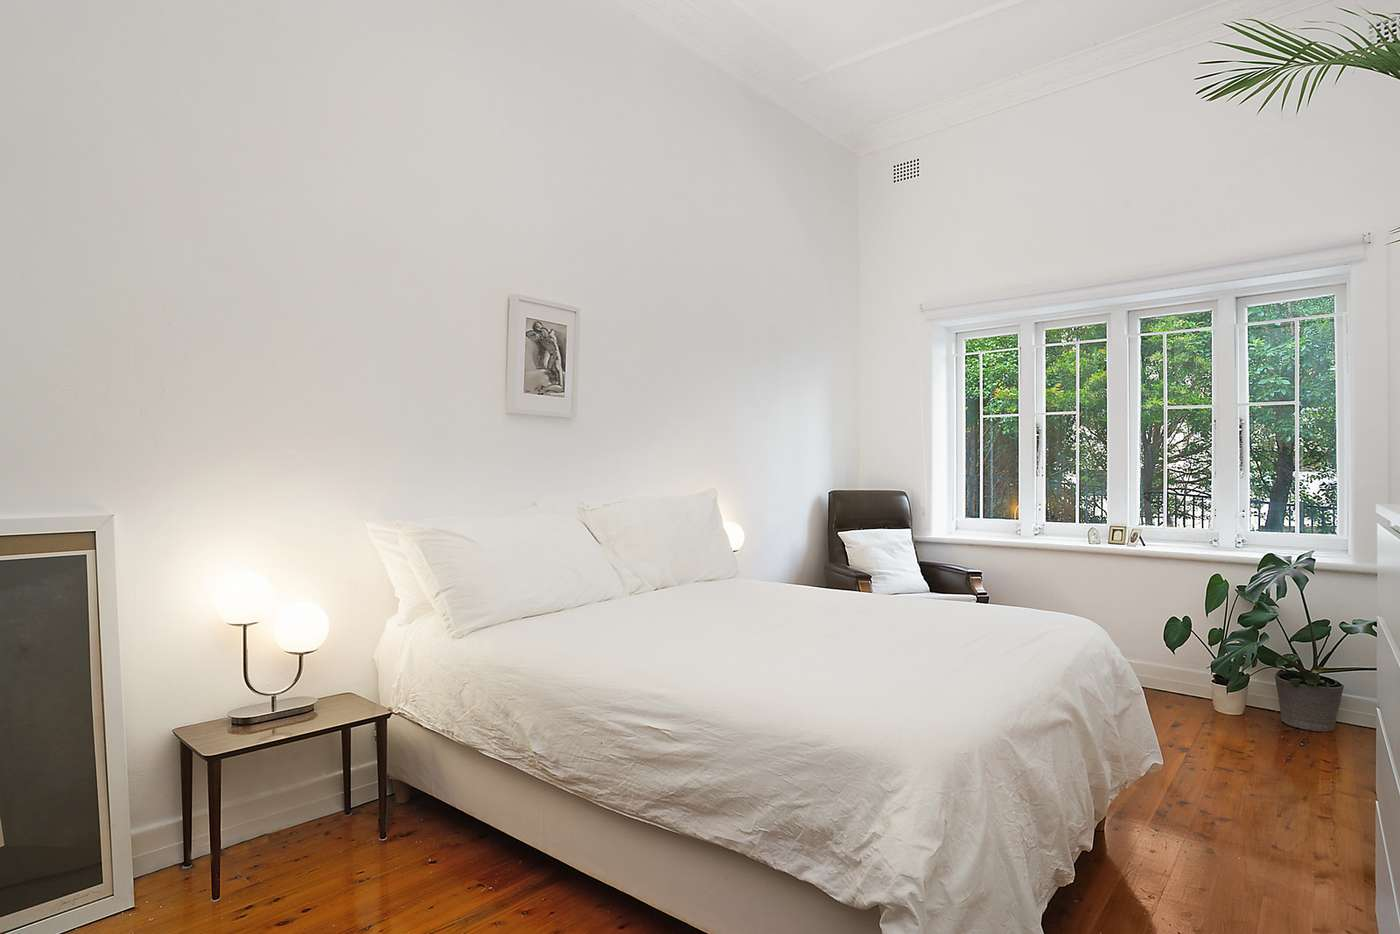 Fifth view of Homely apartment listing, 1/2 Clapton Place, Darlinghurst NSW 2010